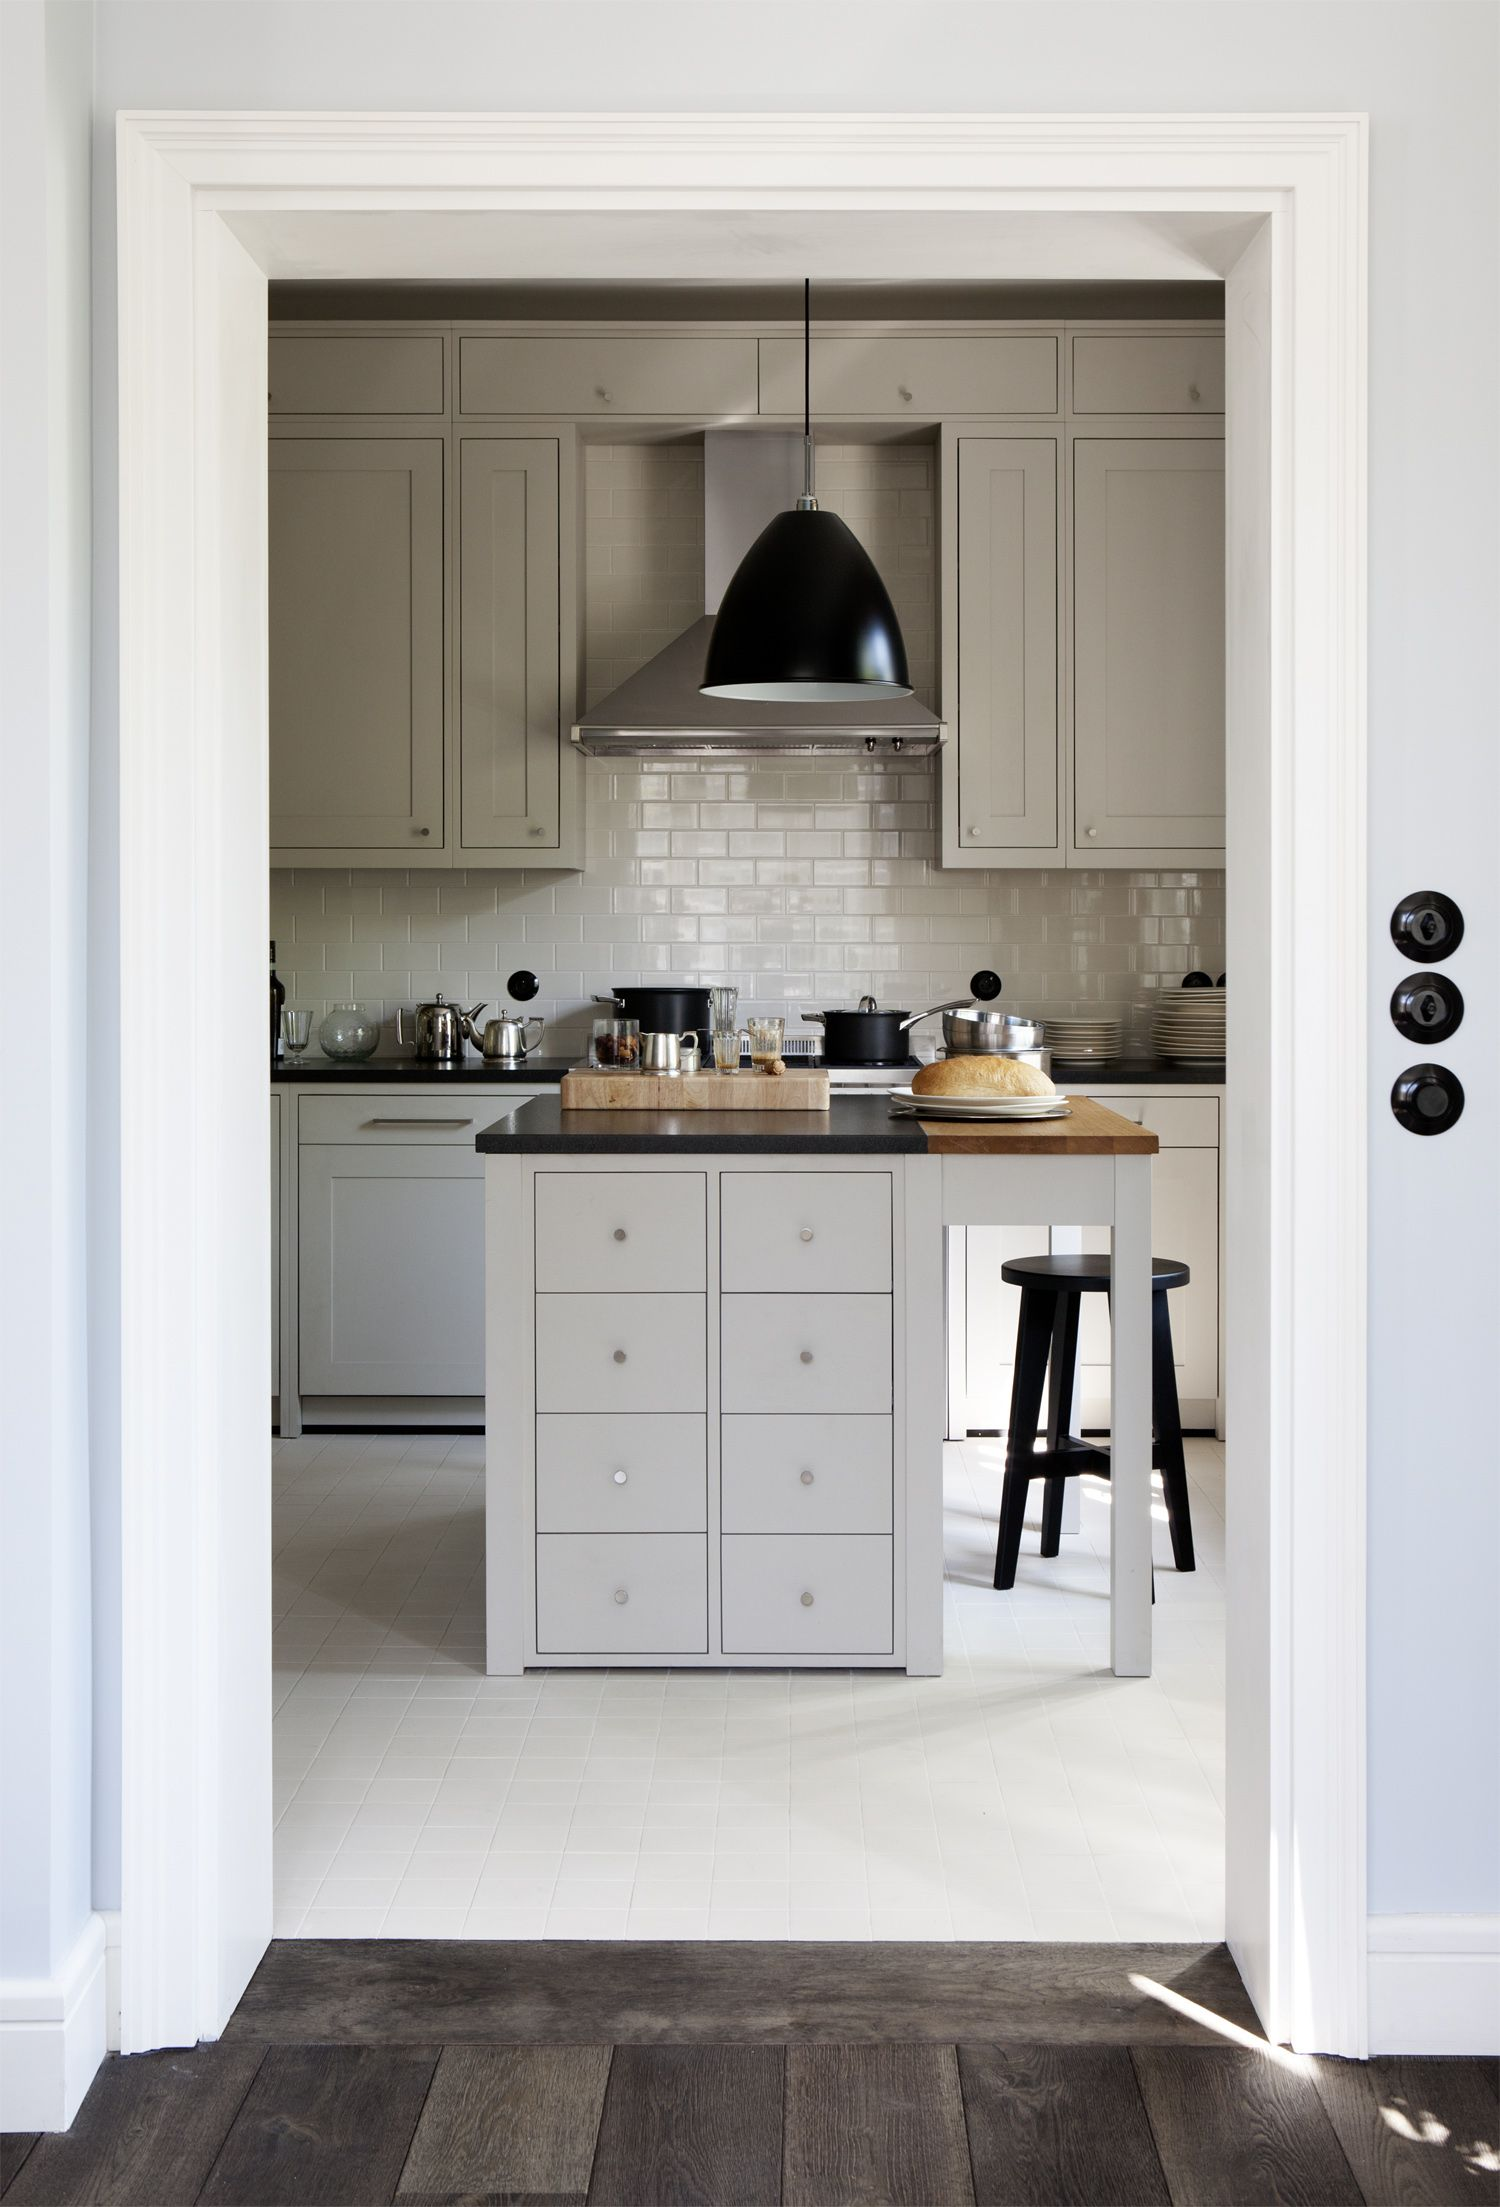 Farrow And Ball Skimming Stone Farrow And Ball Skimming Stone Kitchen K I T C H E N